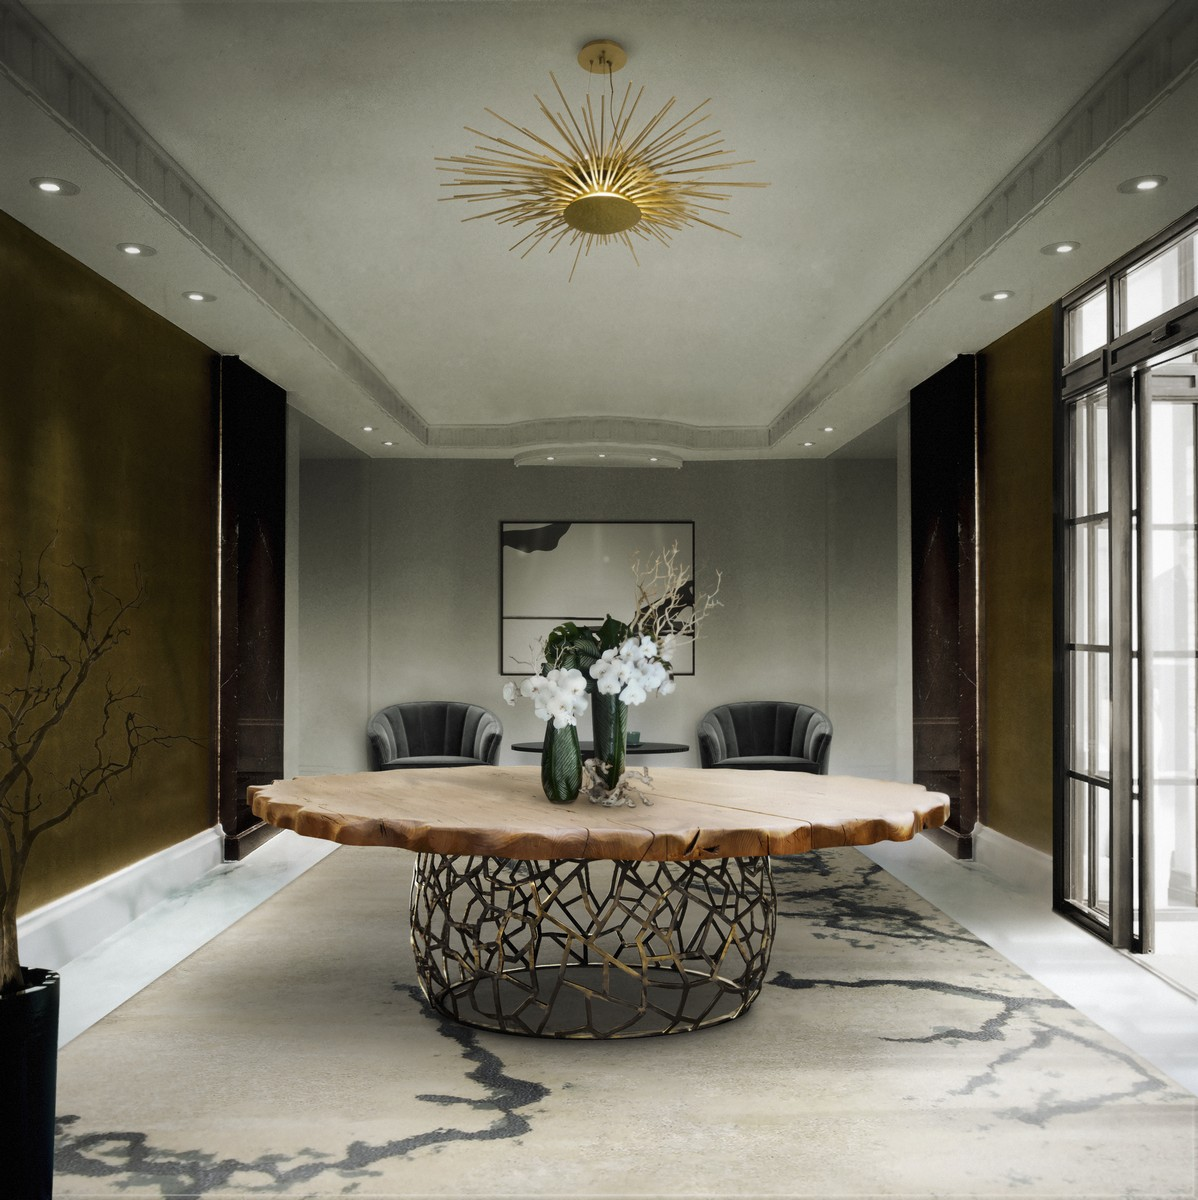 145 Striking Hospitality Furniture That Will Blow Your Mind- Part2 hospitality furniture 145 Striking Hospitality Furniture That Will Blow Your Mind- Part2 ENTRANCE HALL BB Contract